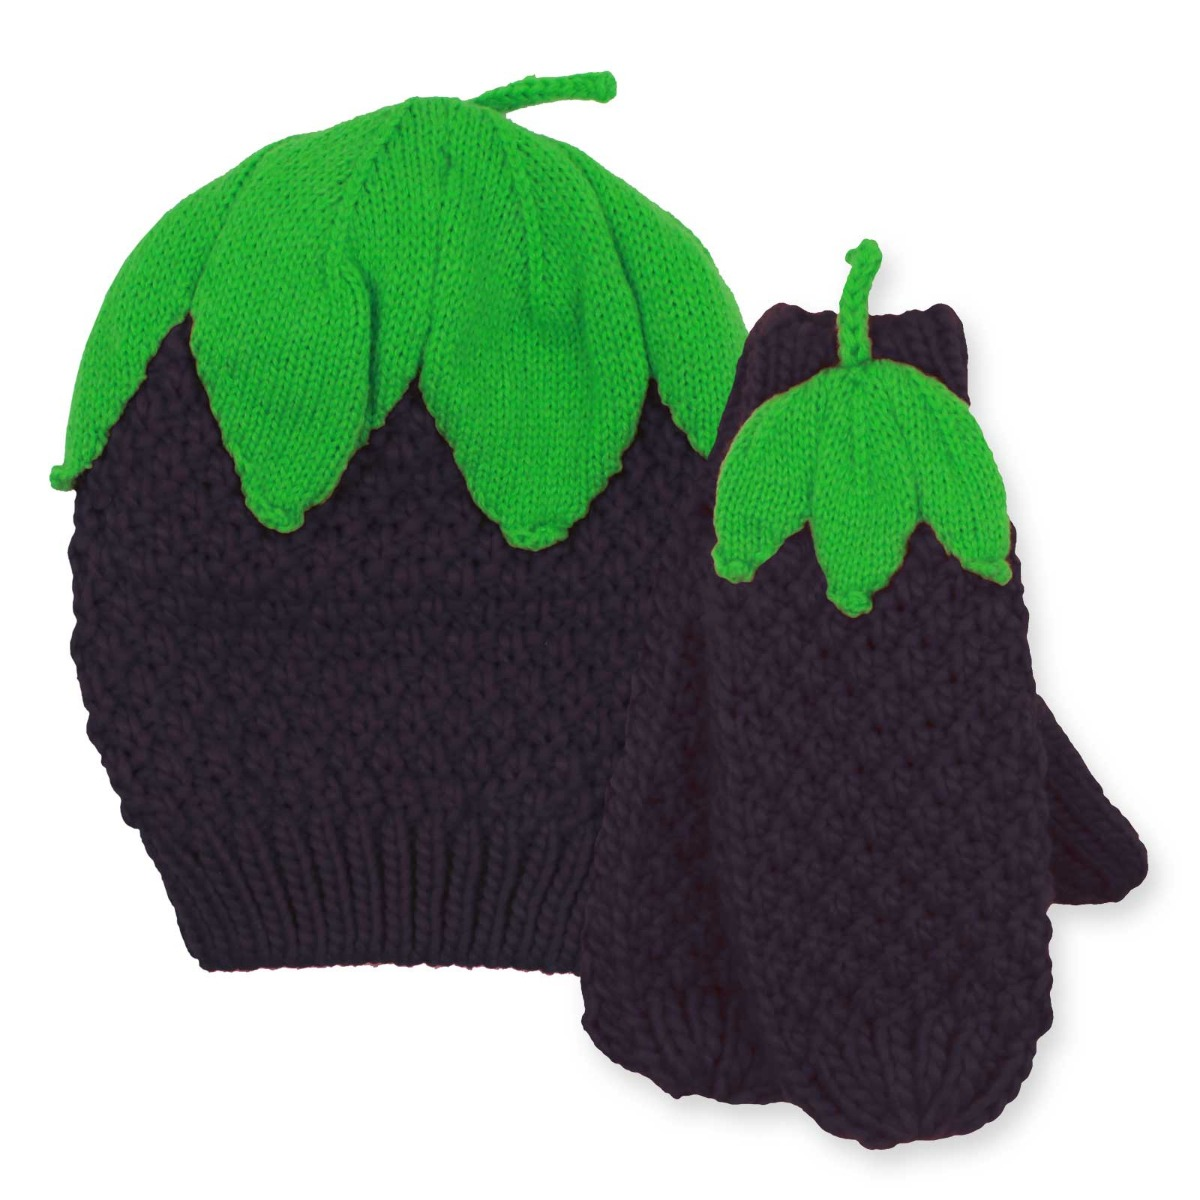 ddc36fdce5bf4 Boys Girls Kids Fruit Hat And Gloves Set Winter Christmas Mittens ...